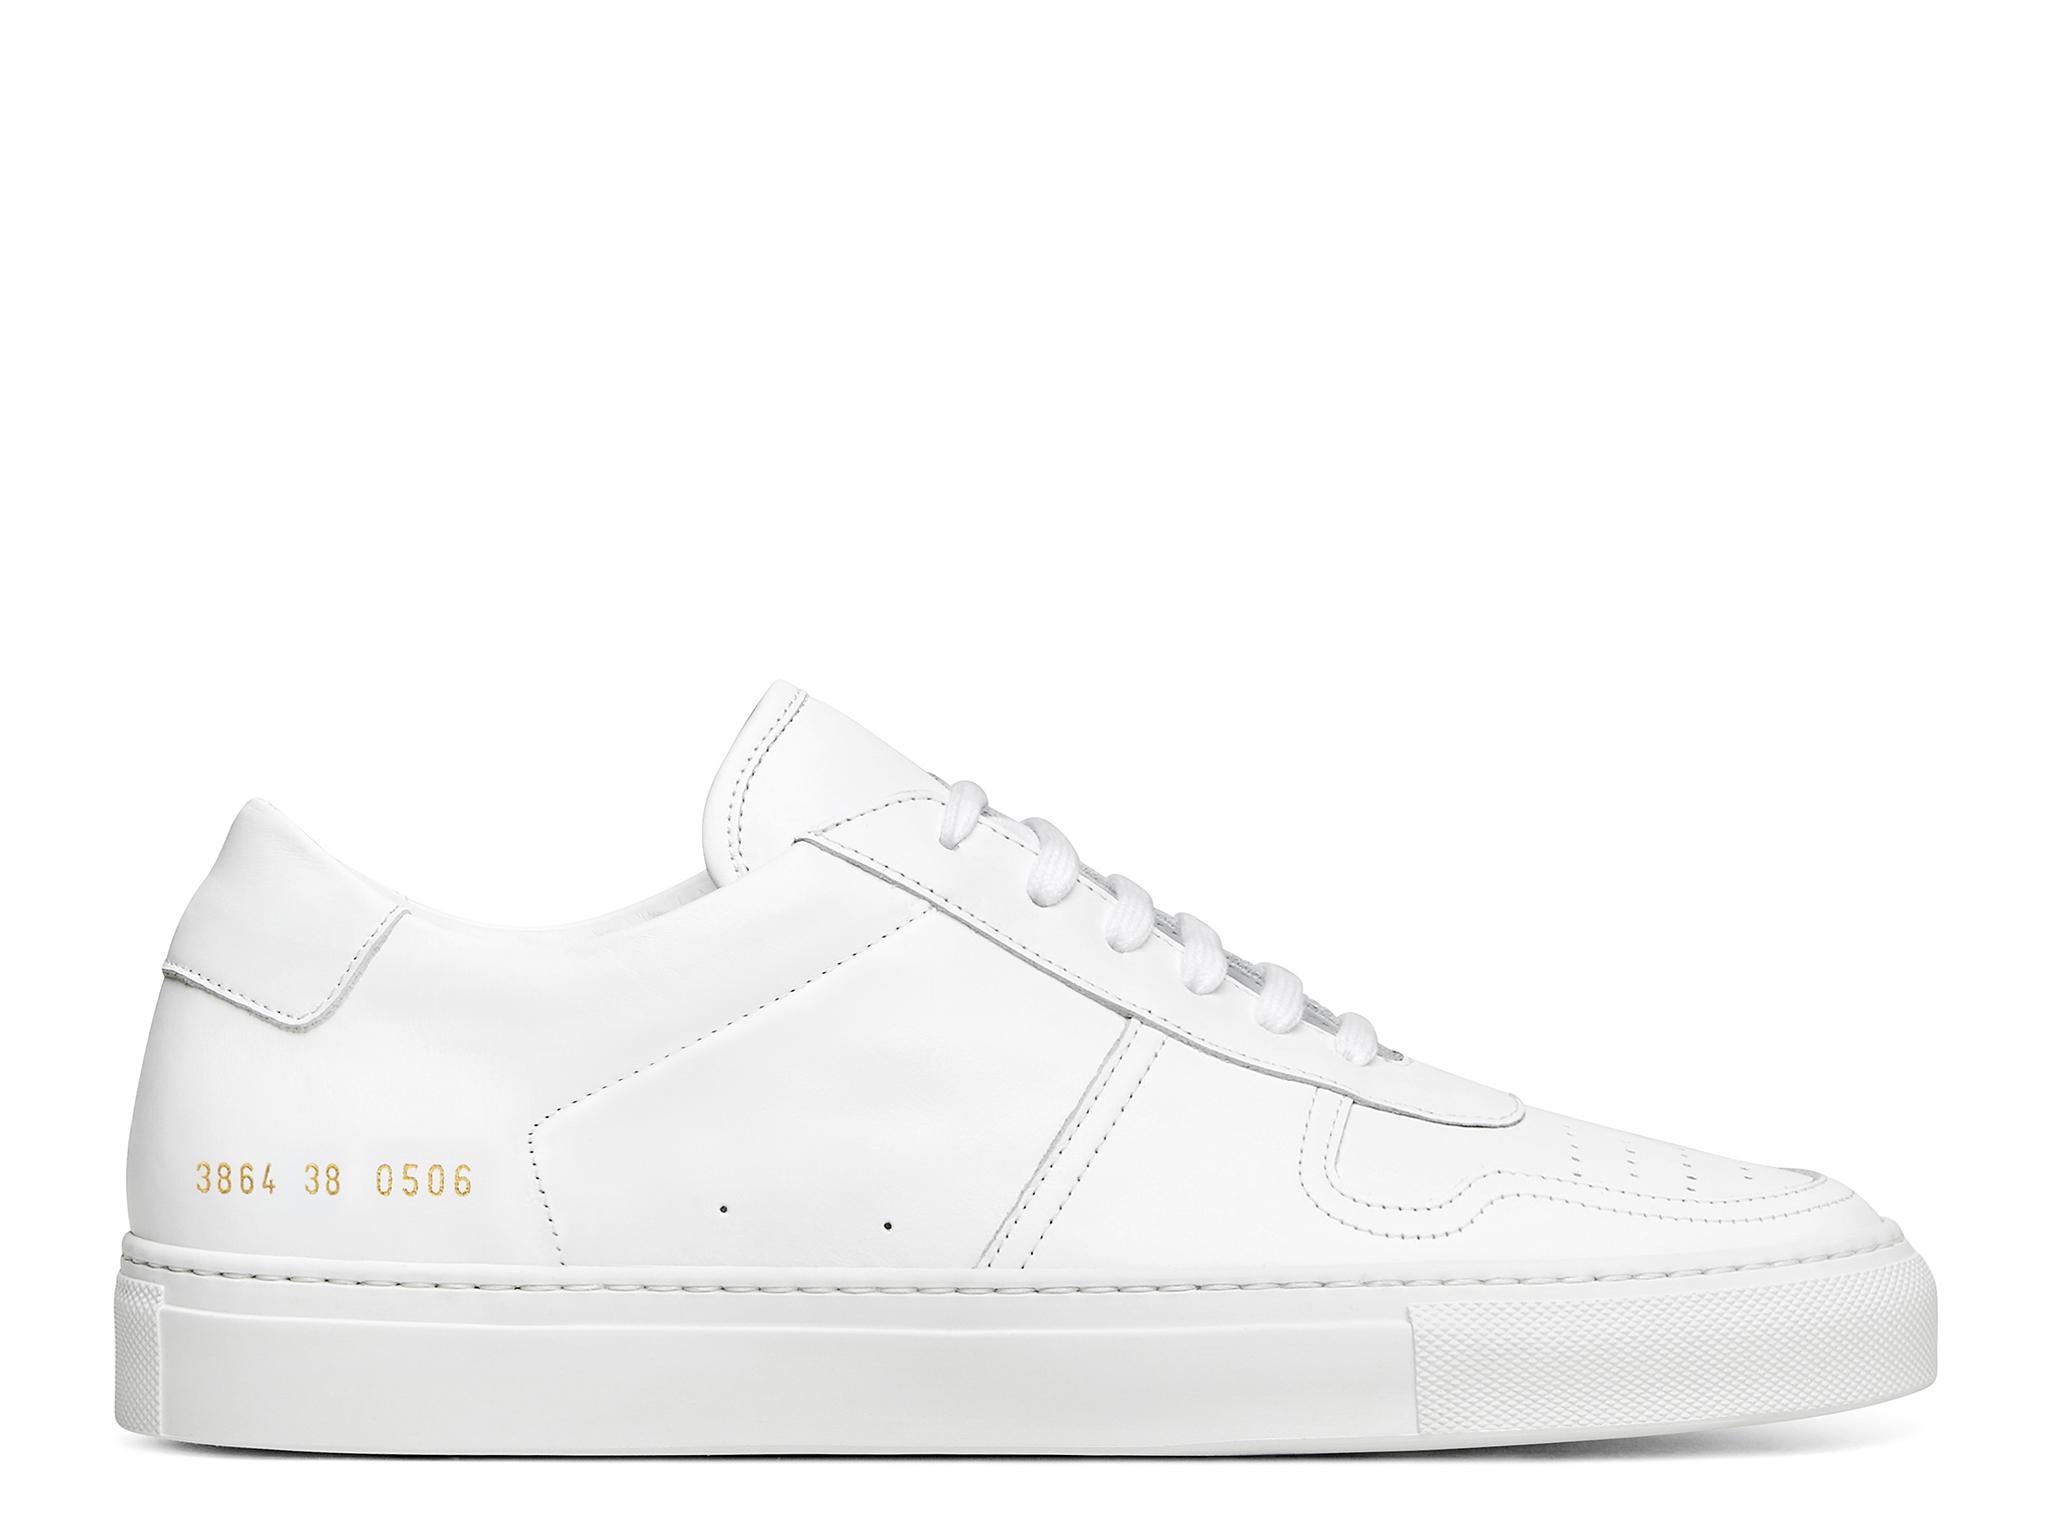 Common Projects Wmns Bball Low Leather by Common Projects Wmns Bball Low Leather 3864 0506 White Bball Low Leather